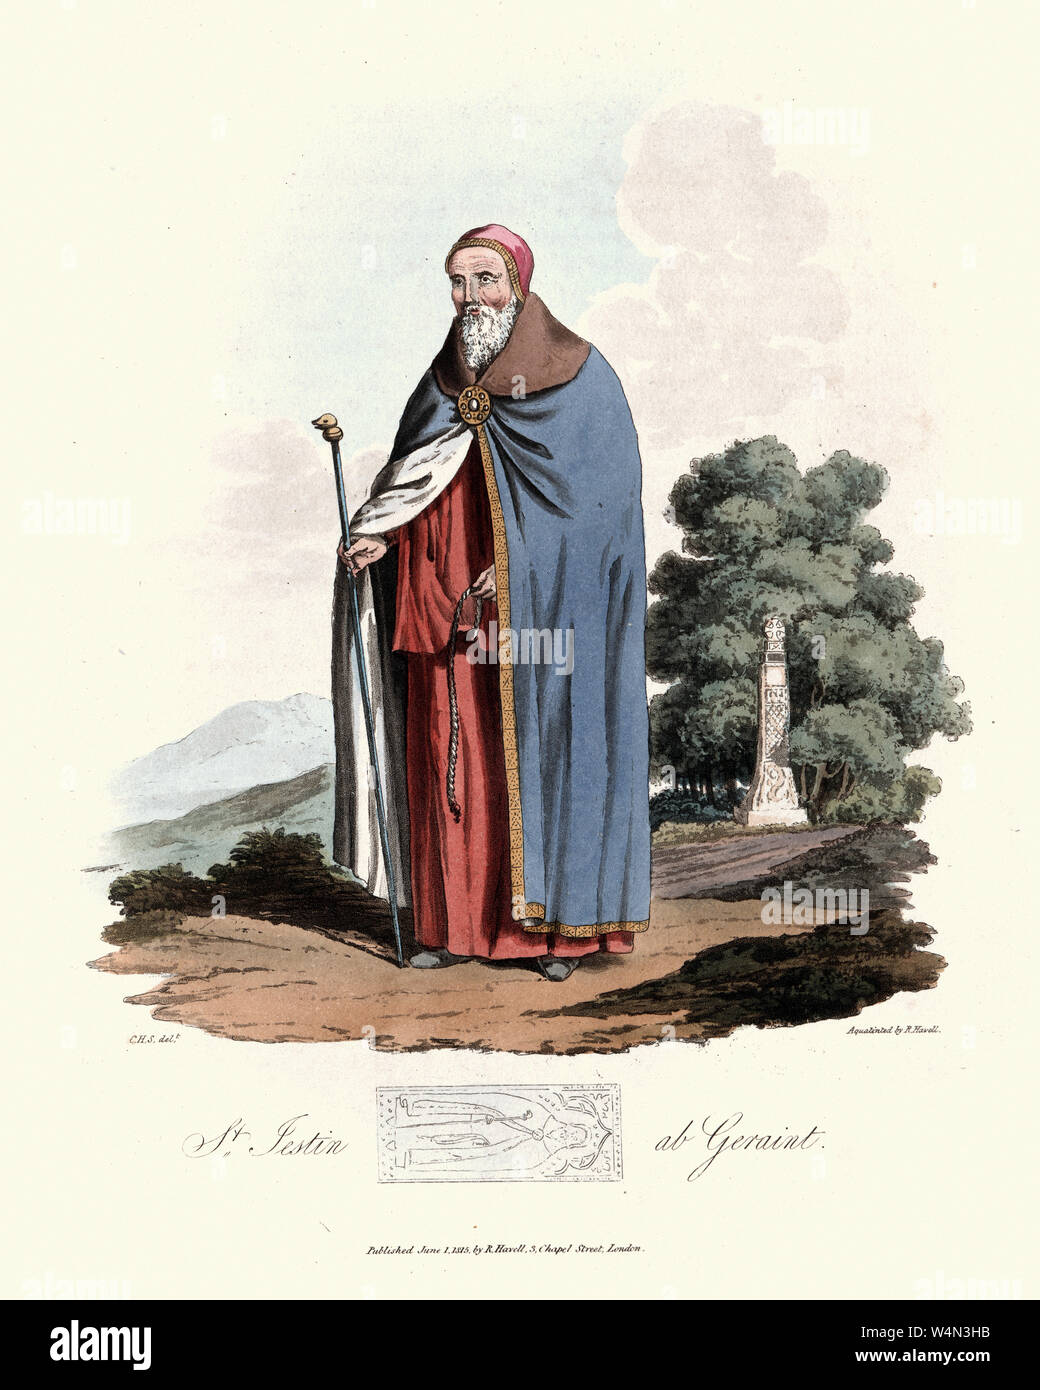 Vintage engraving of St. Iestyn (sometimes recorded as Iestin or the Latin form Justinus) a Welsh hermit and confessor in the 6th or 7th century who i Stock Photo